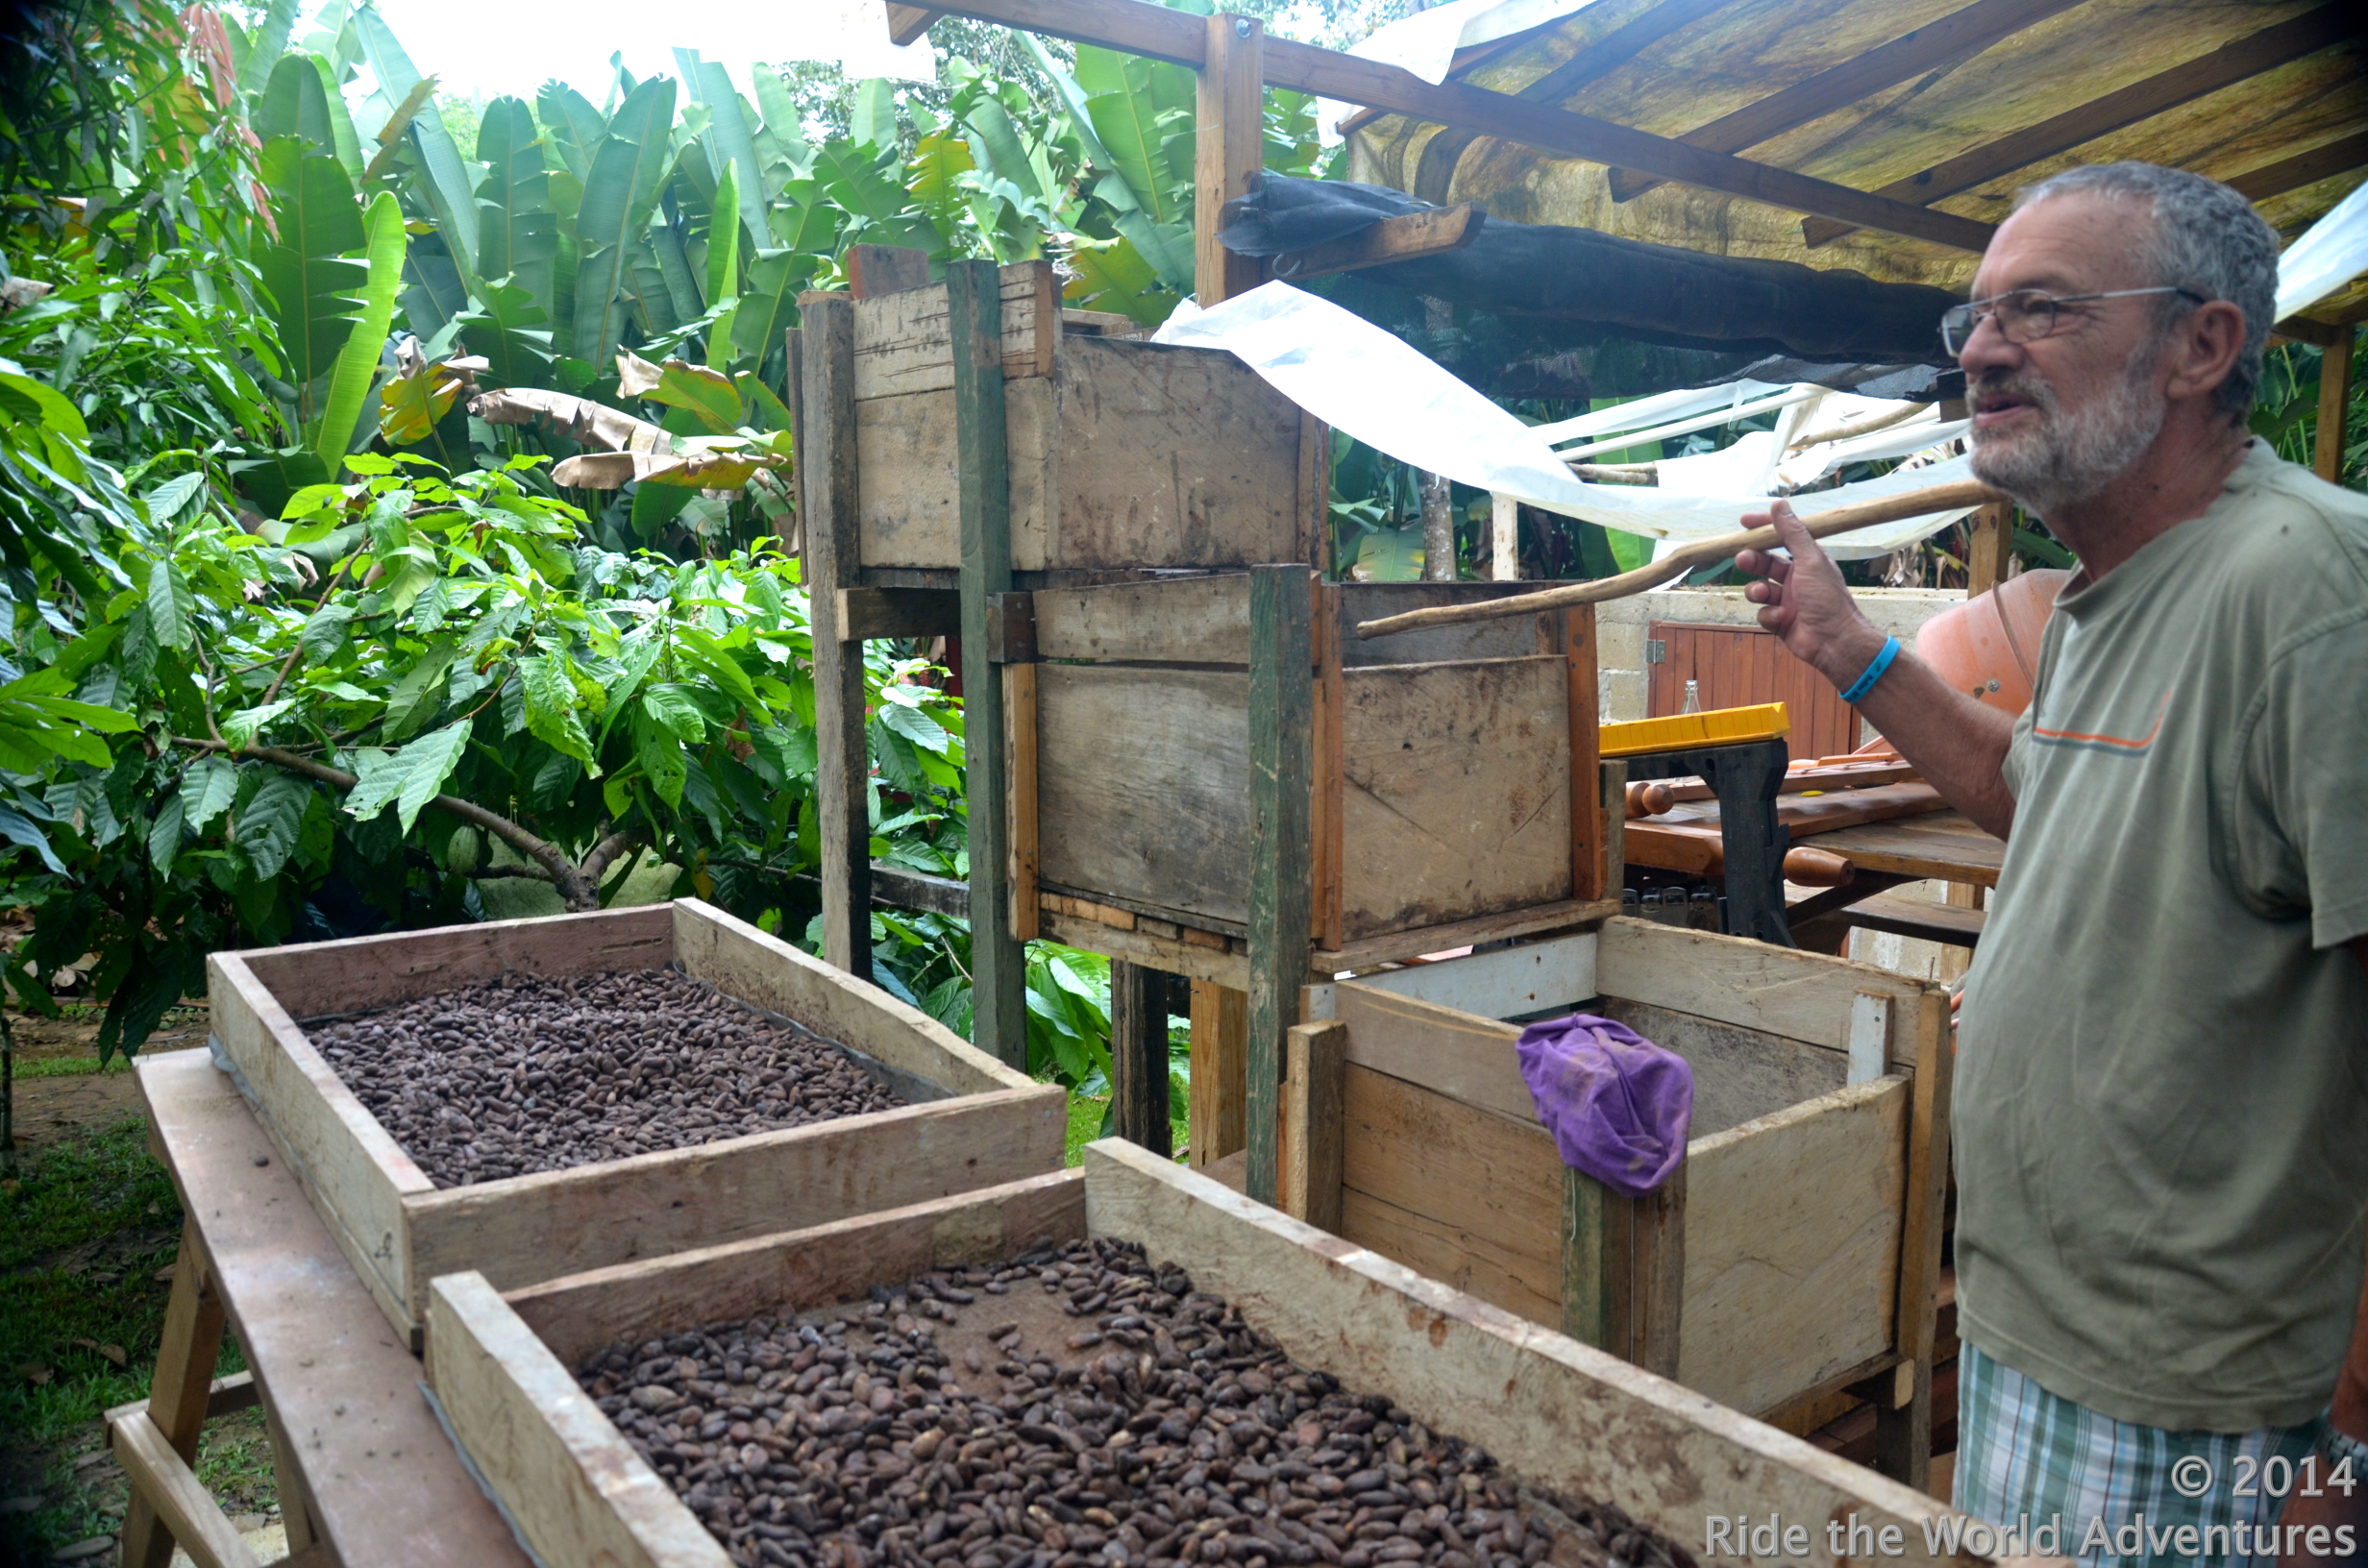 Kevin showing us how his Farm works…The last of the cocoa beans drying!